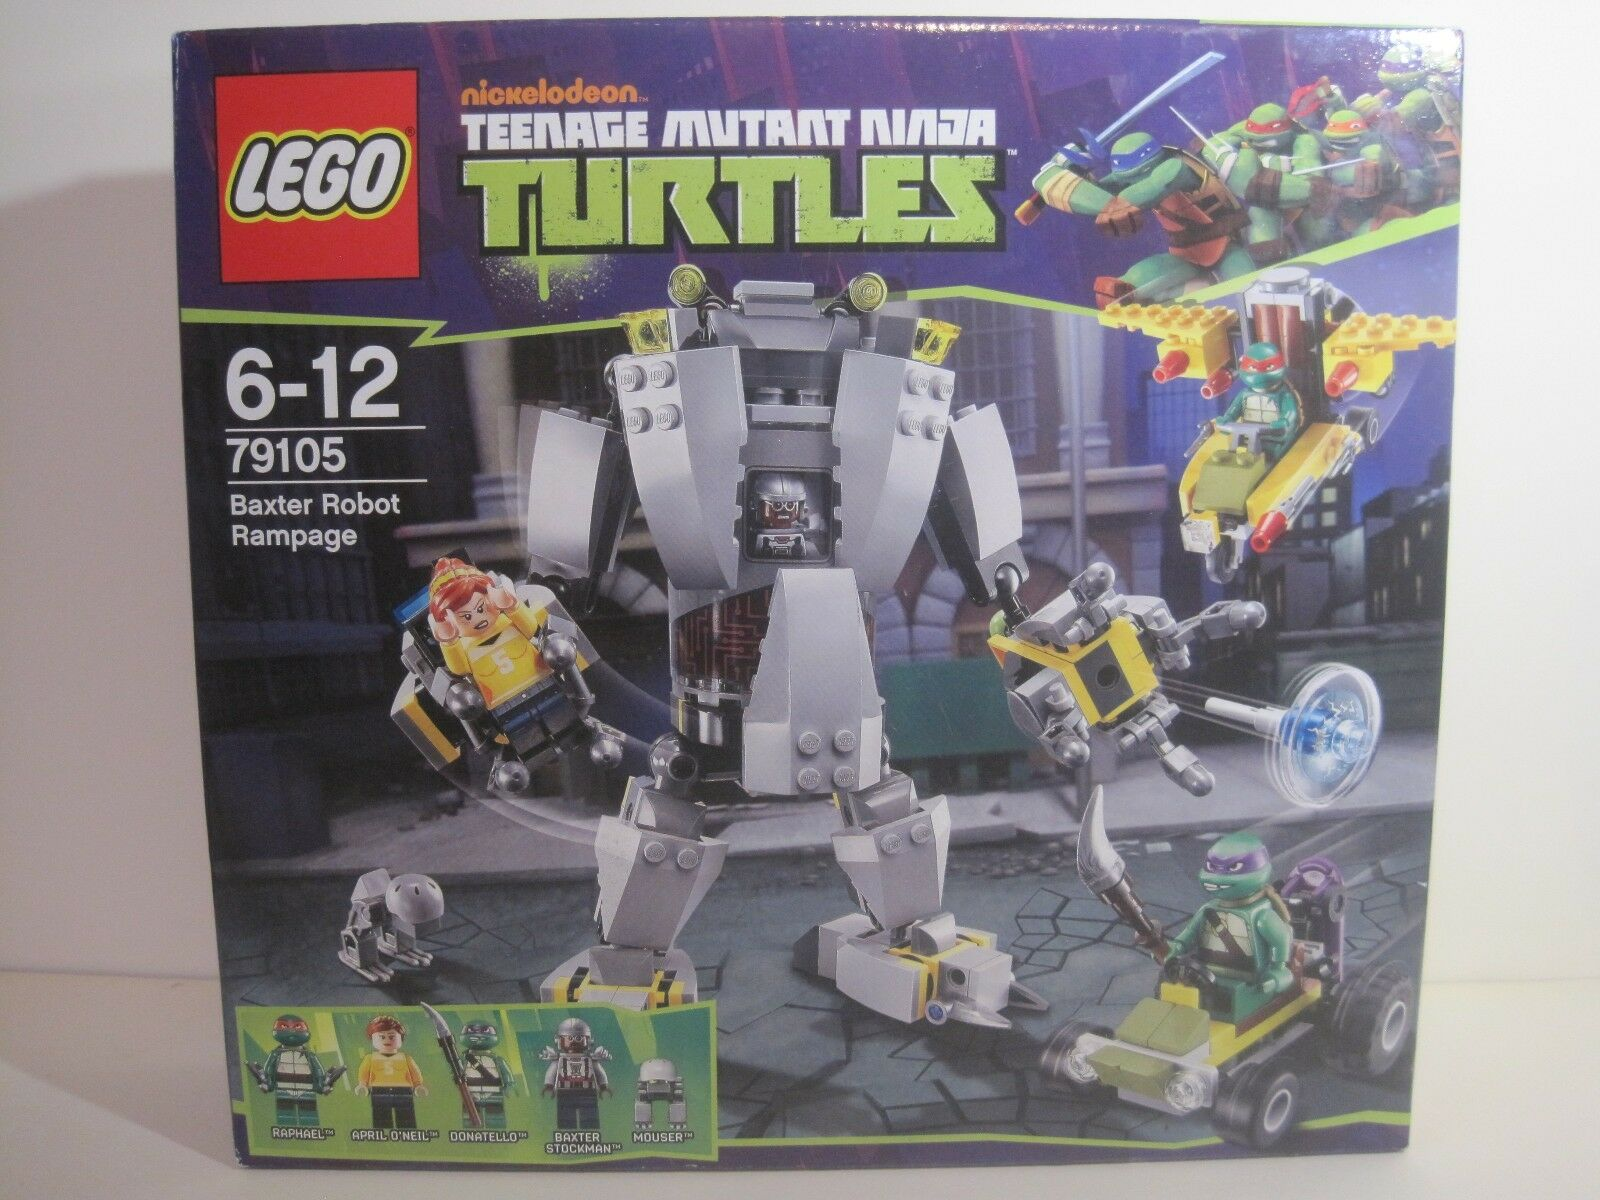 Lego Teenage Mutant Ninja Turtles (79105) BAXTER ROBOT RAMPAGE (New & Sealed)